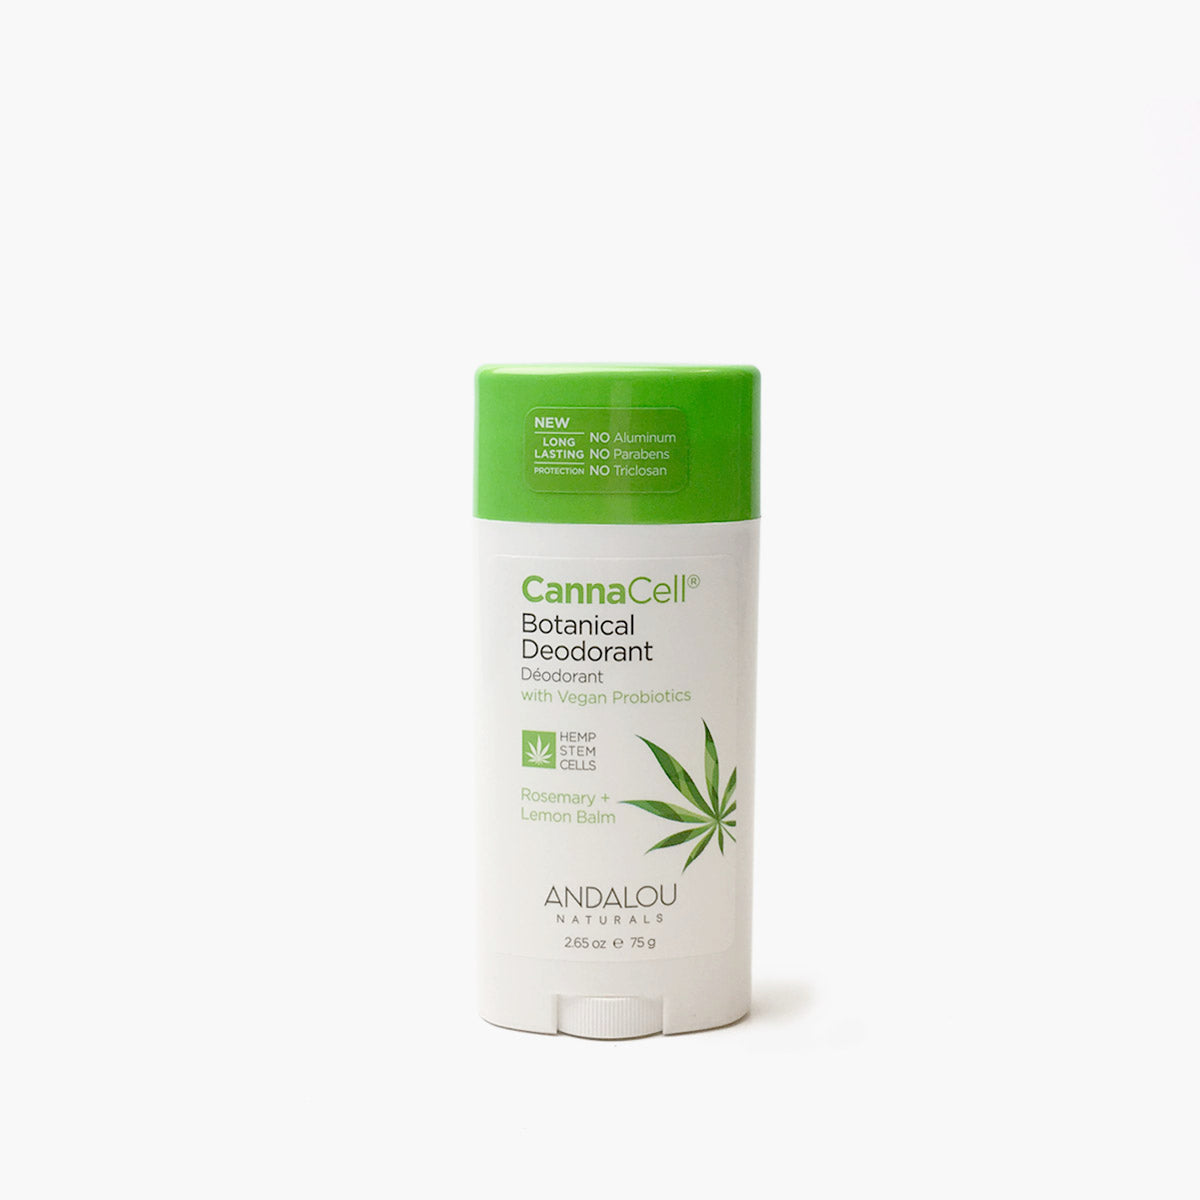 CannaCell Botanical Deodorant - Rosemary + Lemon Balm - Andalou Naturals US